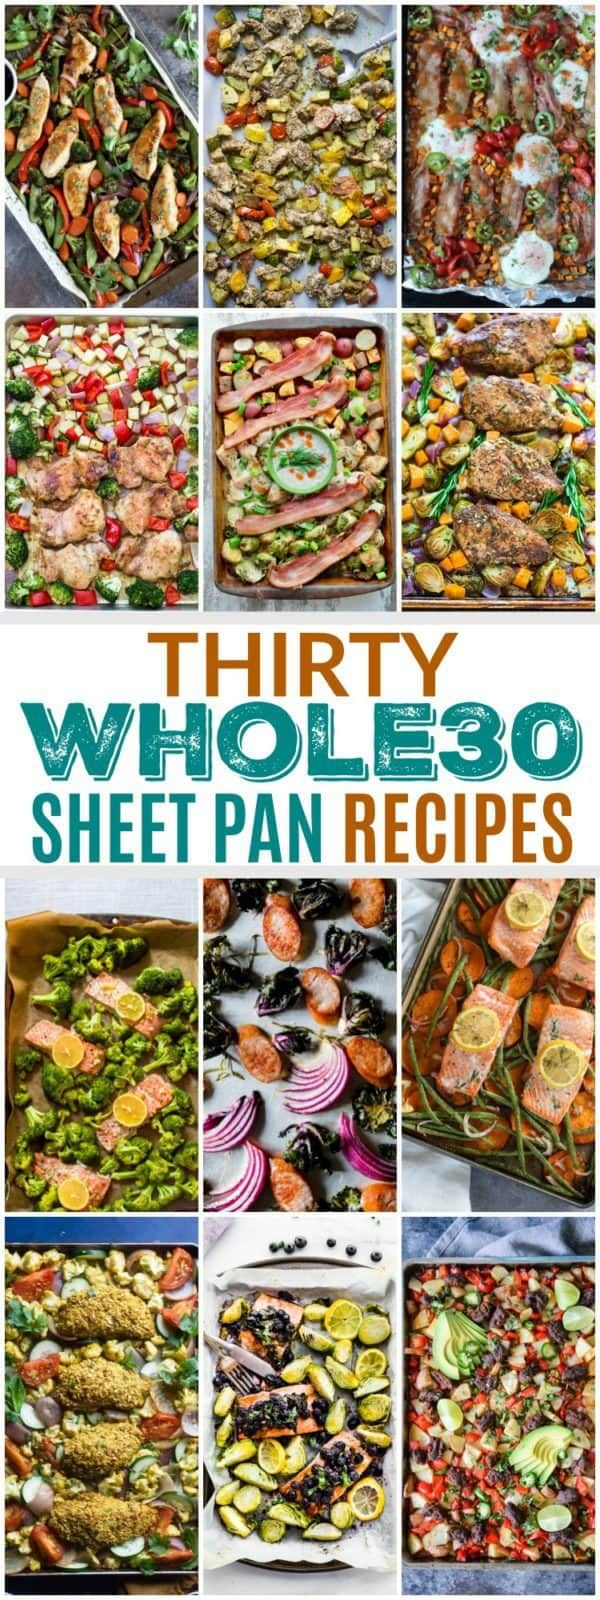 30 Whole30 Sheet Pan Recipes images